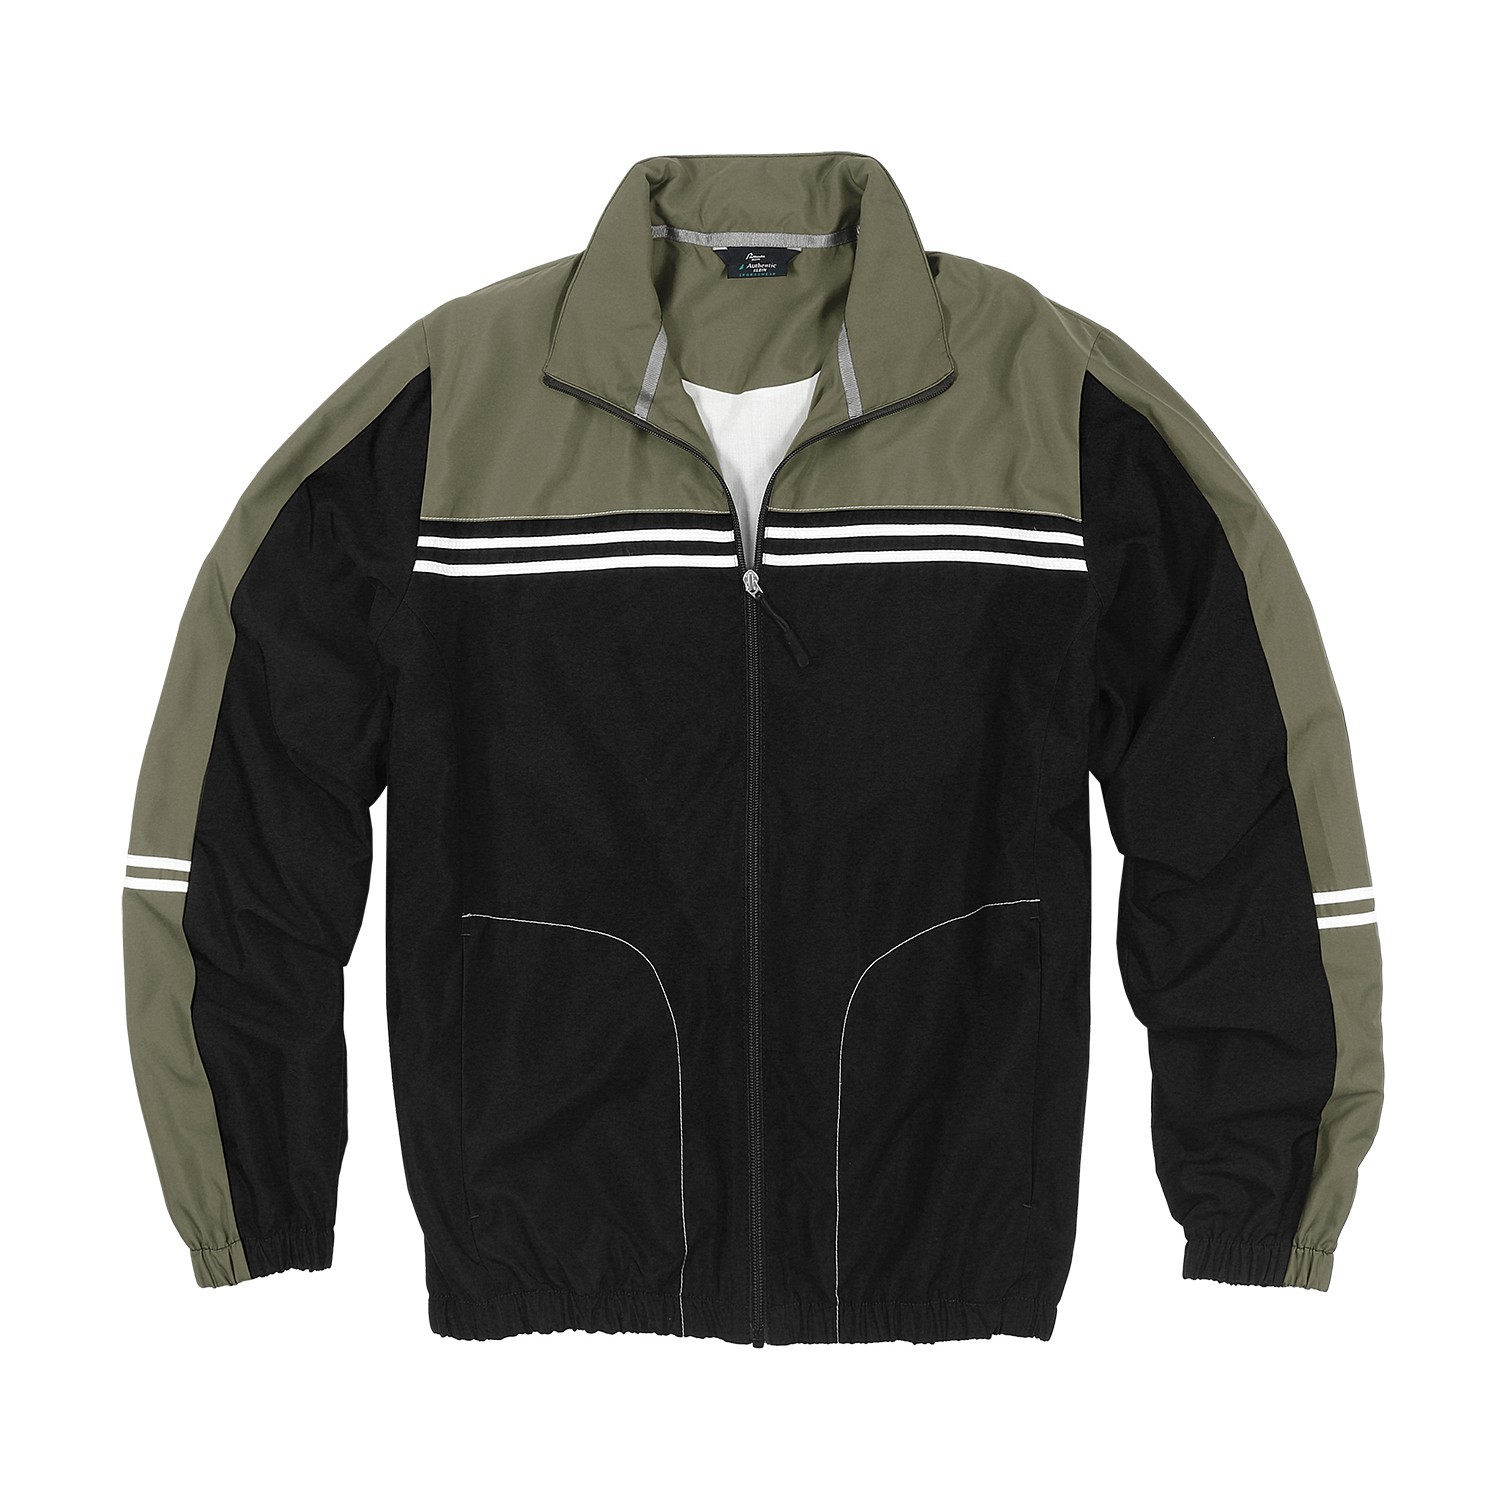 Detail Image to Stocky size sports and leisure jacket in black, plus sizes by AUTHENTIC KLEIN